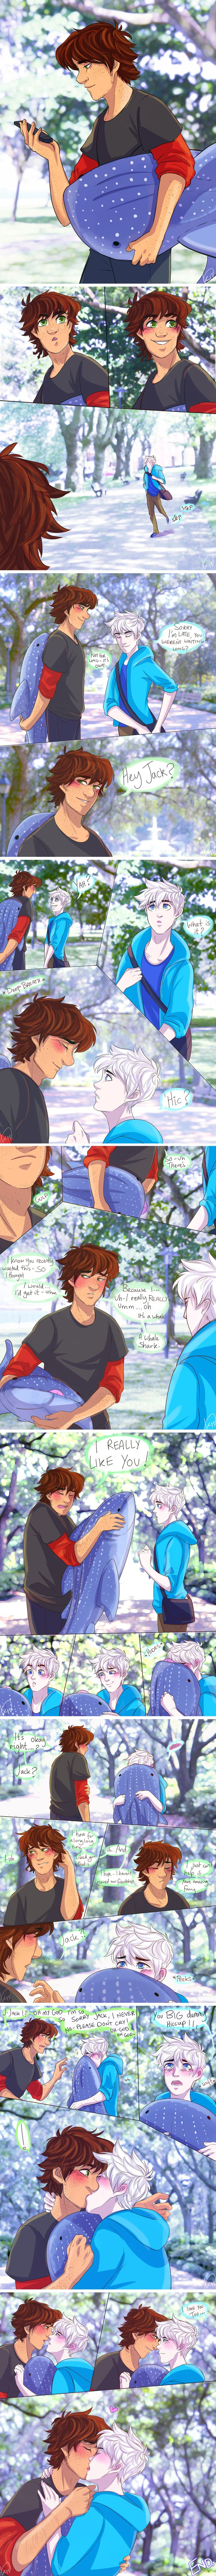 Hijack comic by KT-ExReplica.deviantart.com on @DeviantArt<< I don't know what you're talking about I don't ship this at all